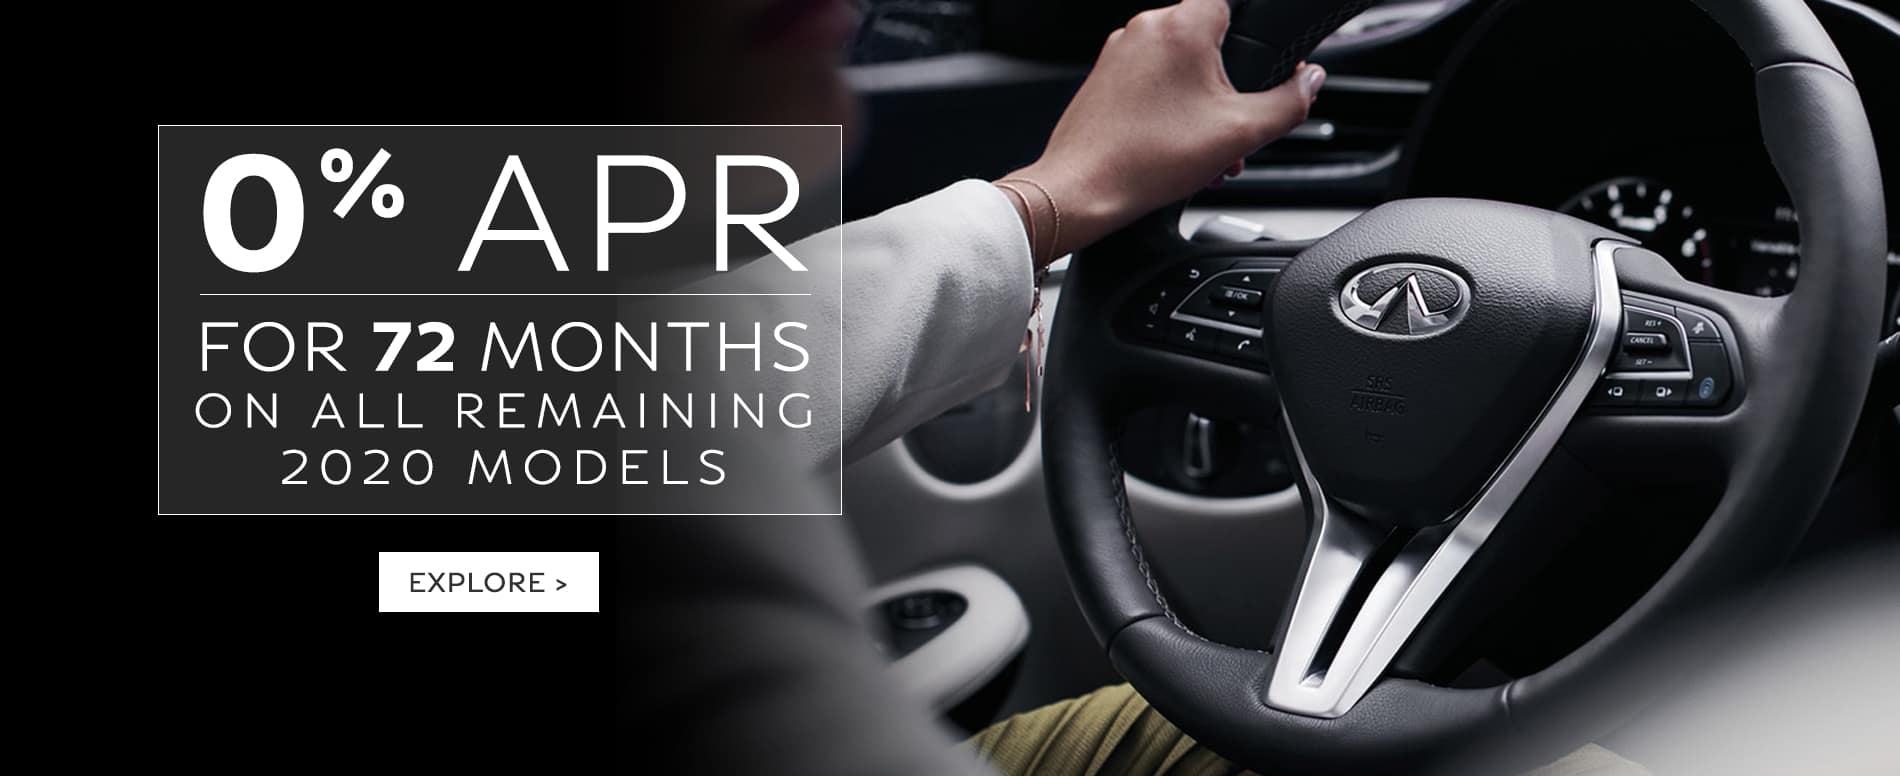 Enjoy 0% APR for up to 72 months on remaining 2020 Models. Hurry in today!